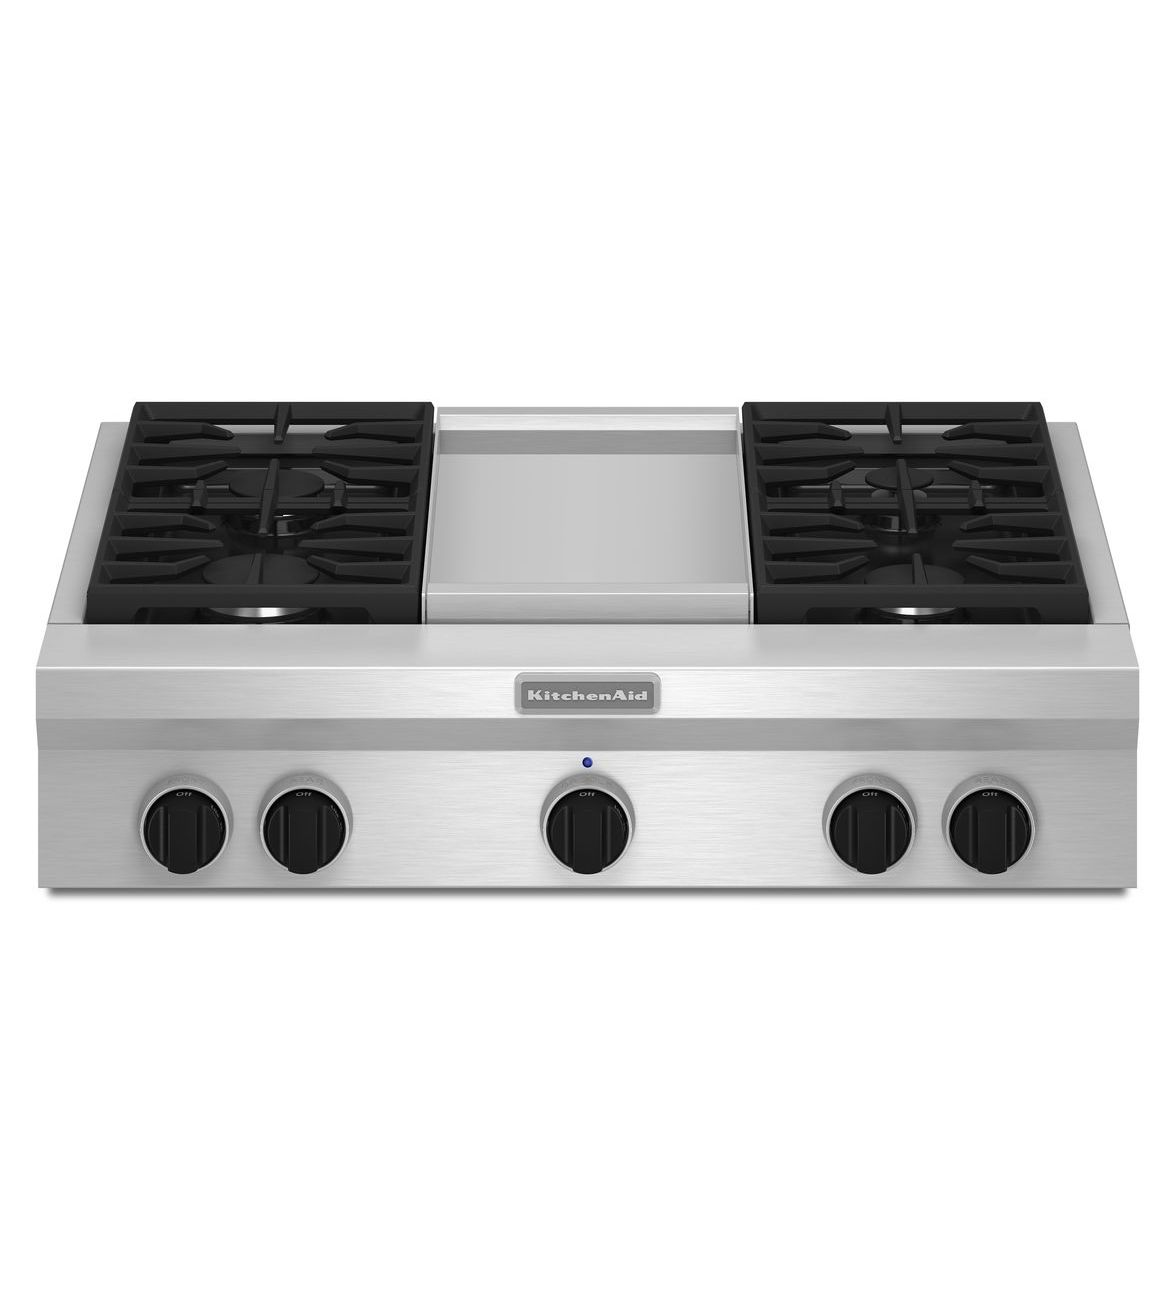 kitchen aid gas cooktop home depot backsplash kitchenaid 36